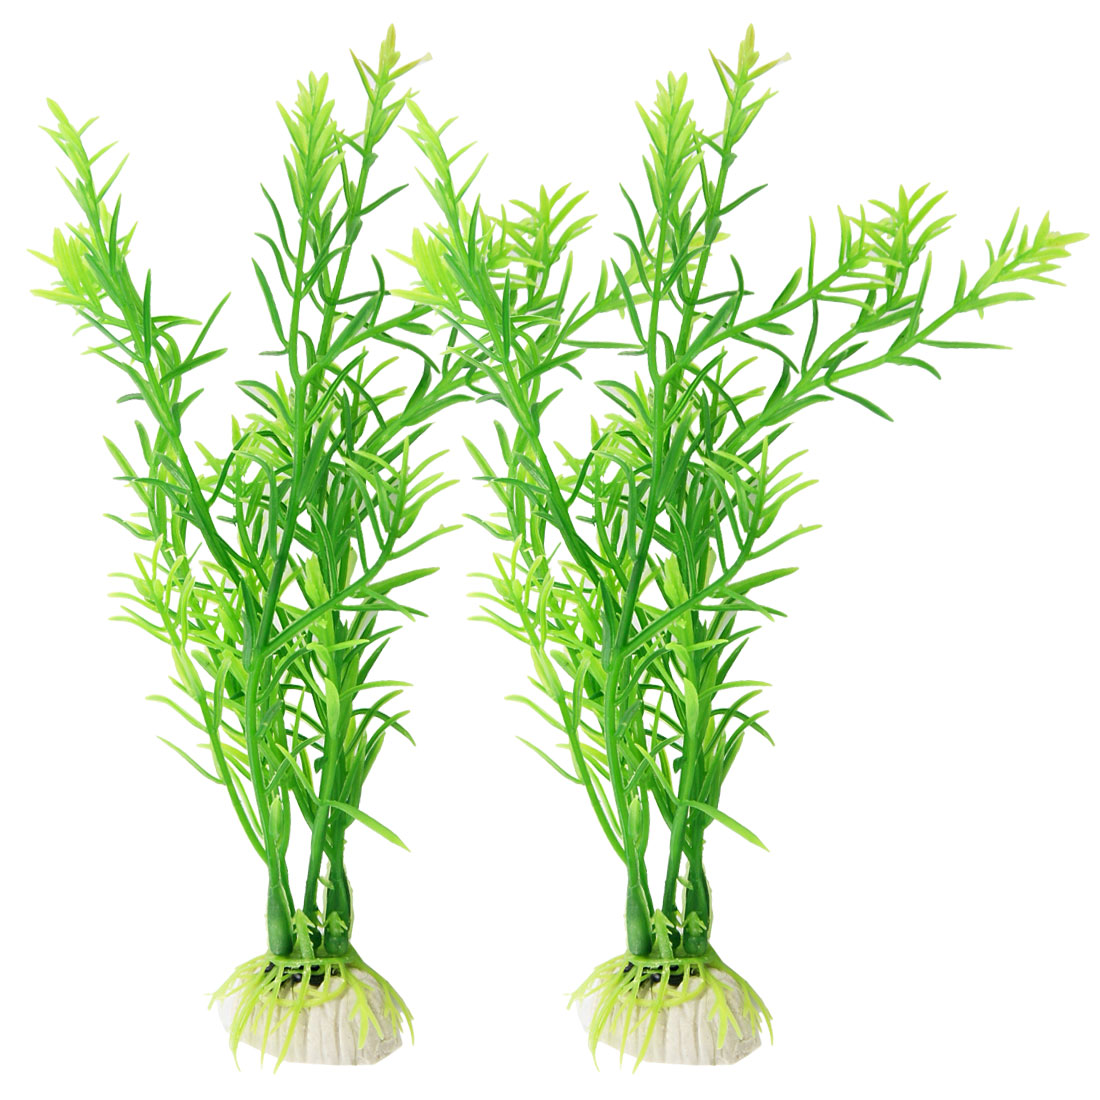 2 Pcs Green Plastic Water Plants Decoration for Aquarium